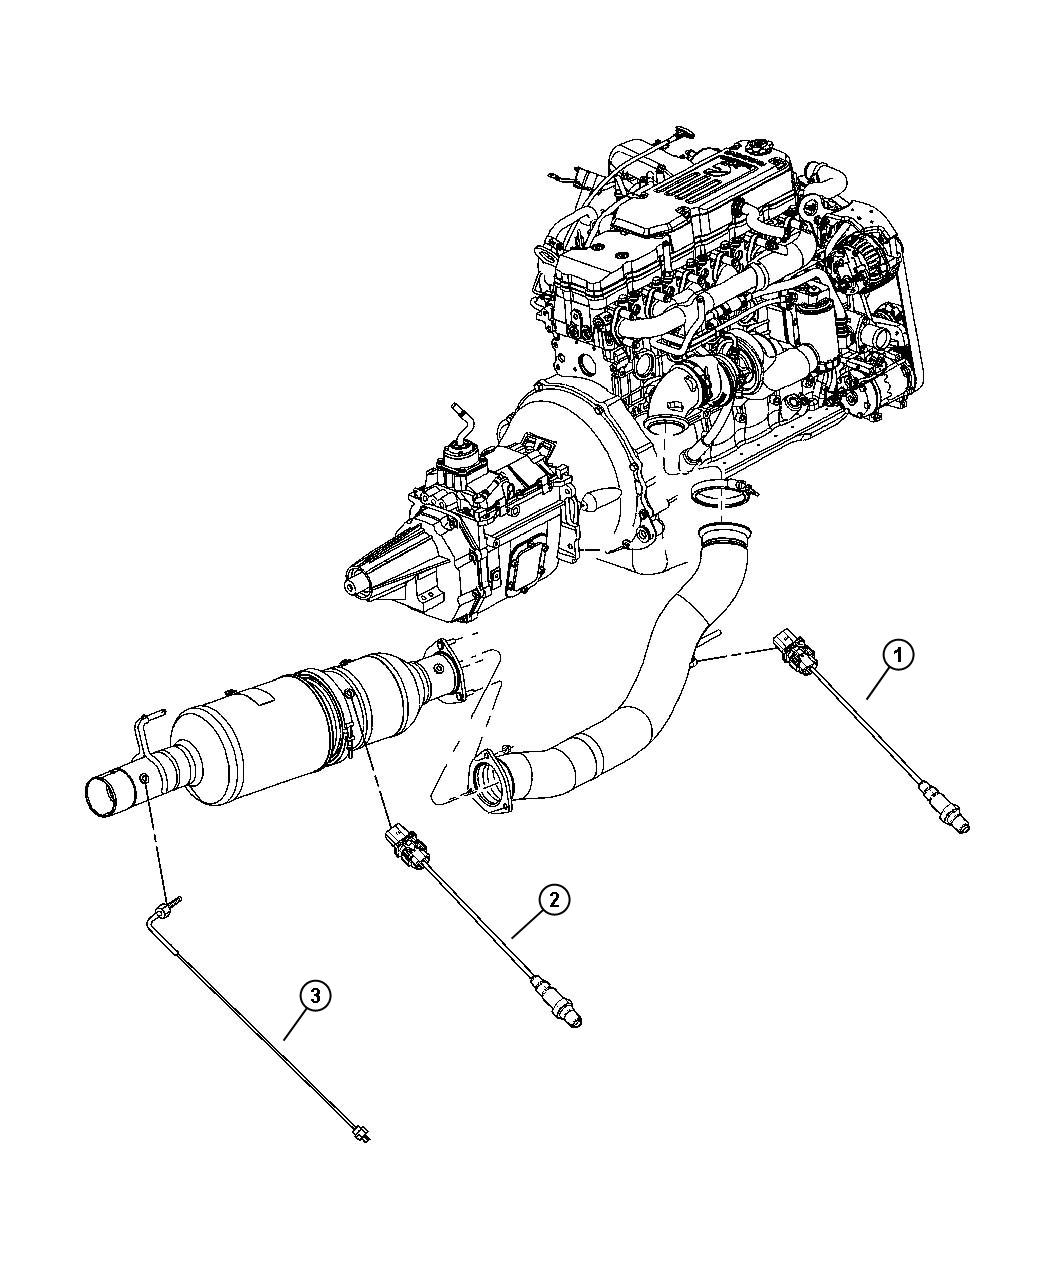 Fuse Box Diagram Further Ford Truck Exhaust Manifold Moreover Ford